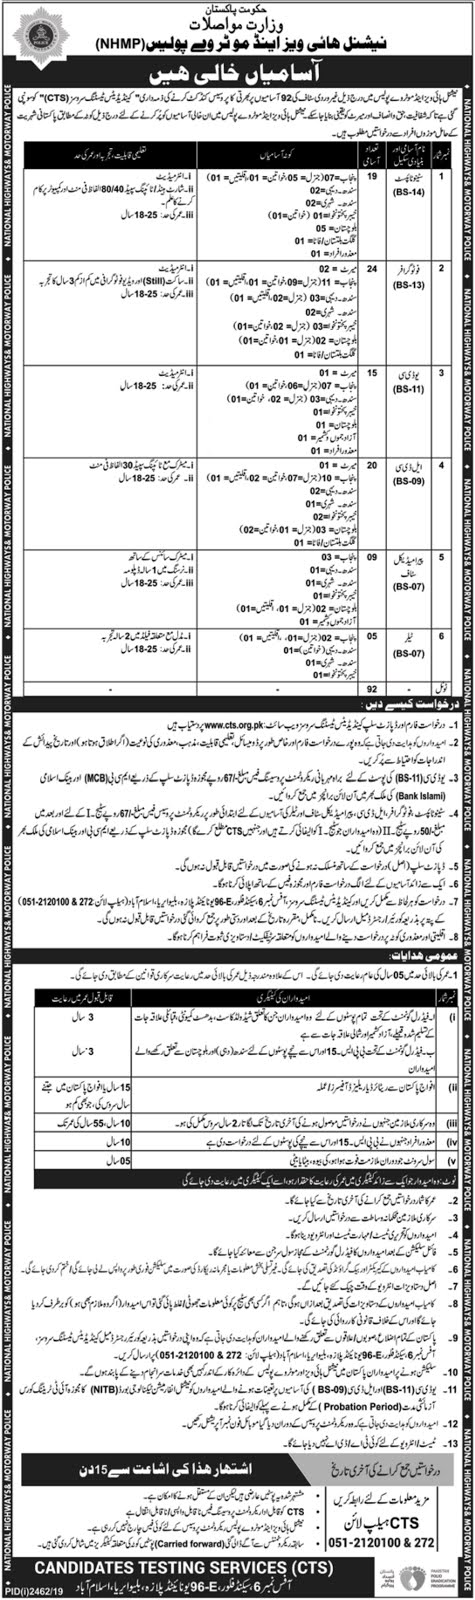 National Highways & Motorway Police NH&MP November 2019 national highway & motorway police jobs 2019 apply cts,motorway police,national highway and motorway police nh&mp jobs,national highway and motorway police jobs 2019,motorway police jobs 2019,national highways & motorway police (nhmp) jobs 2019,national highways,motorway police jobs,national highways & motorway police,national highway and motorway police jobs 2019